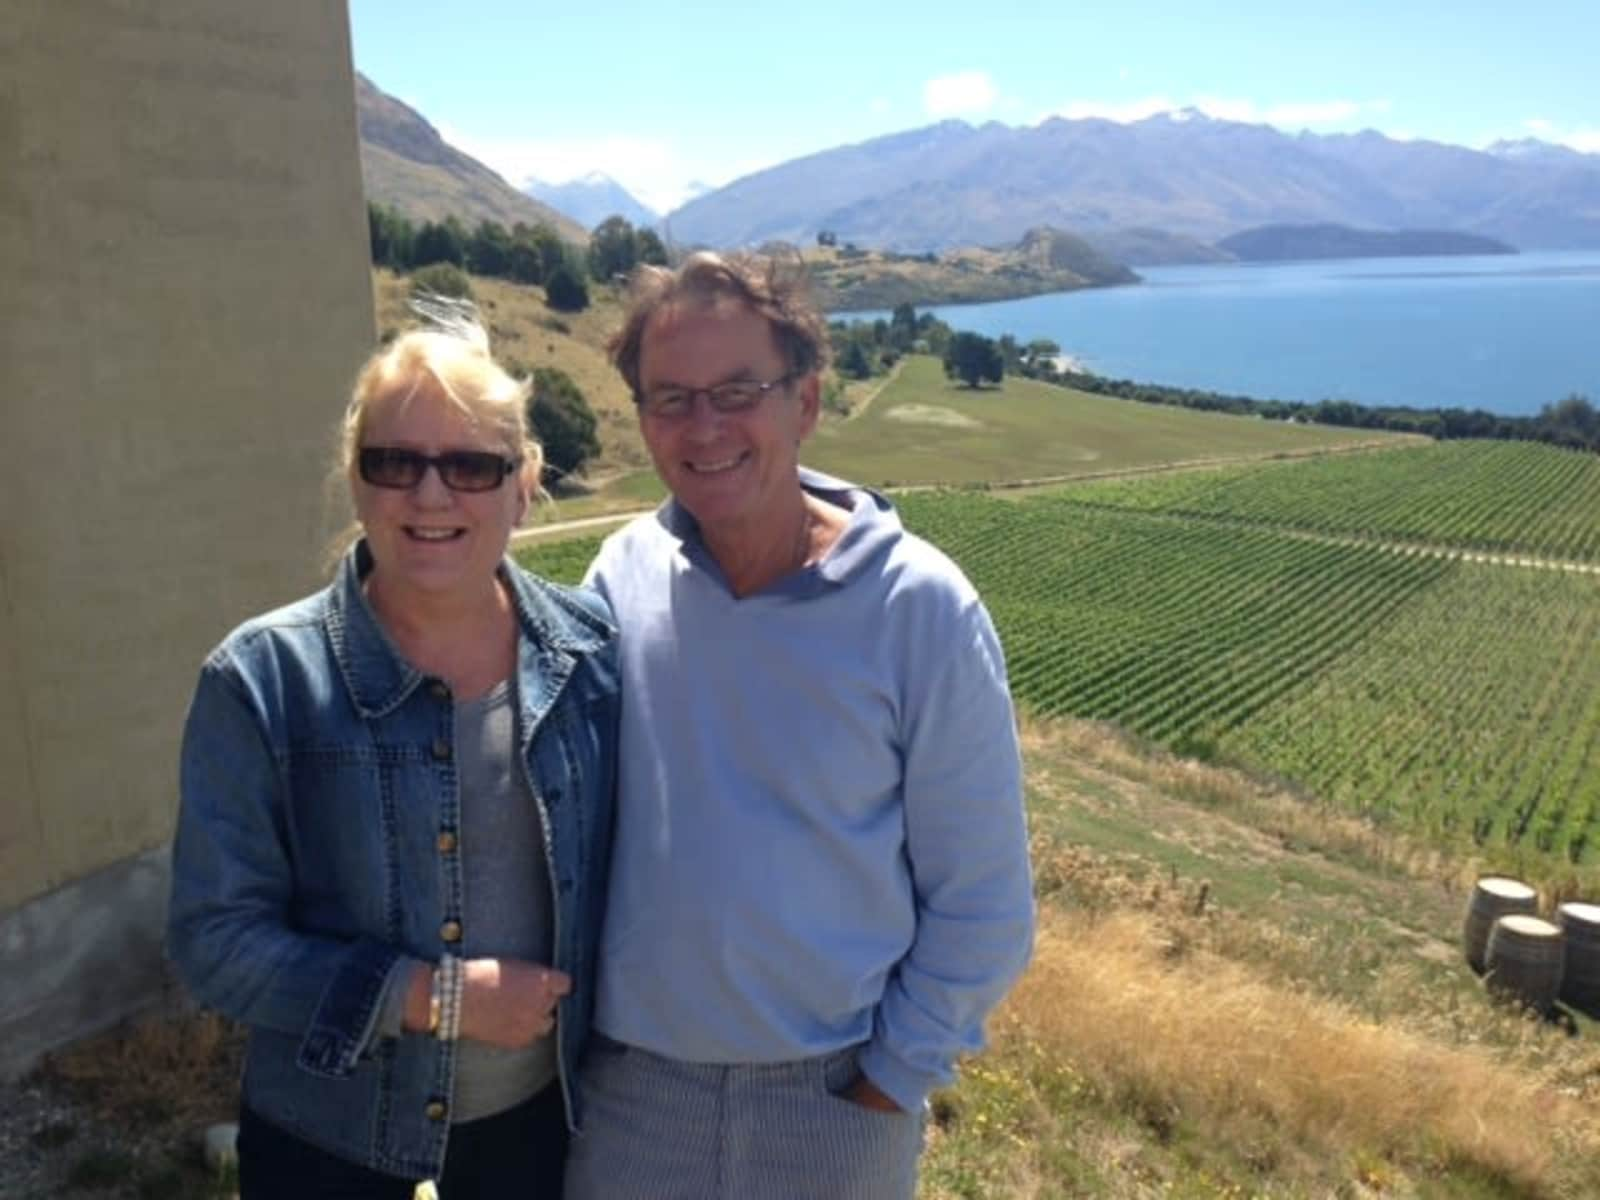 Todd & Kaye mary anne from New Zealand